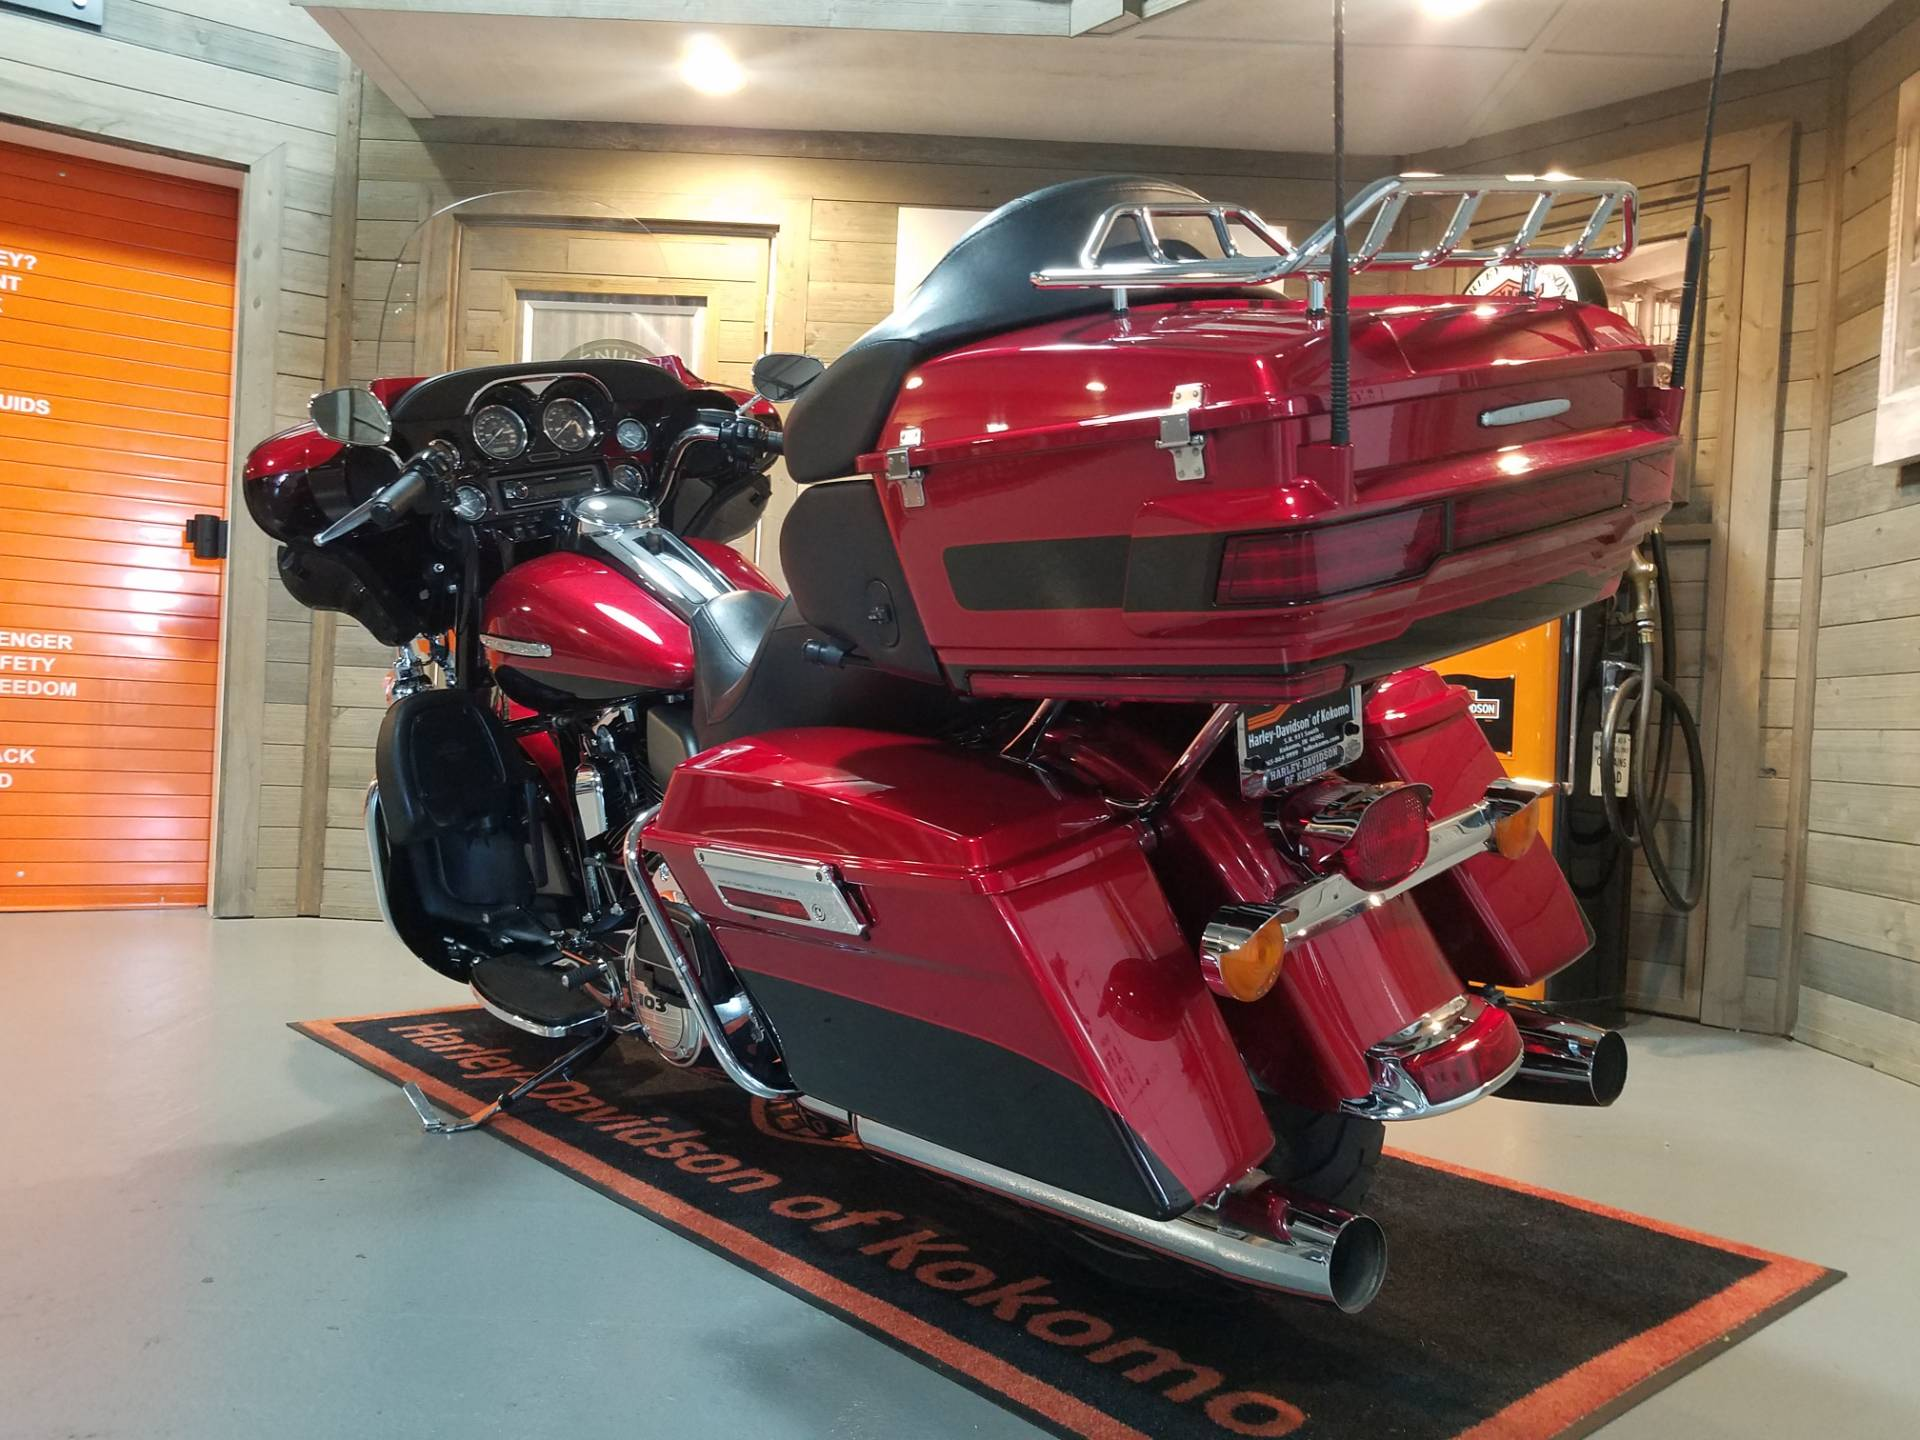 2012 Harley-Davidson Electra Glide® Ultra Limited in Kokomo, Indiana - Photo 9